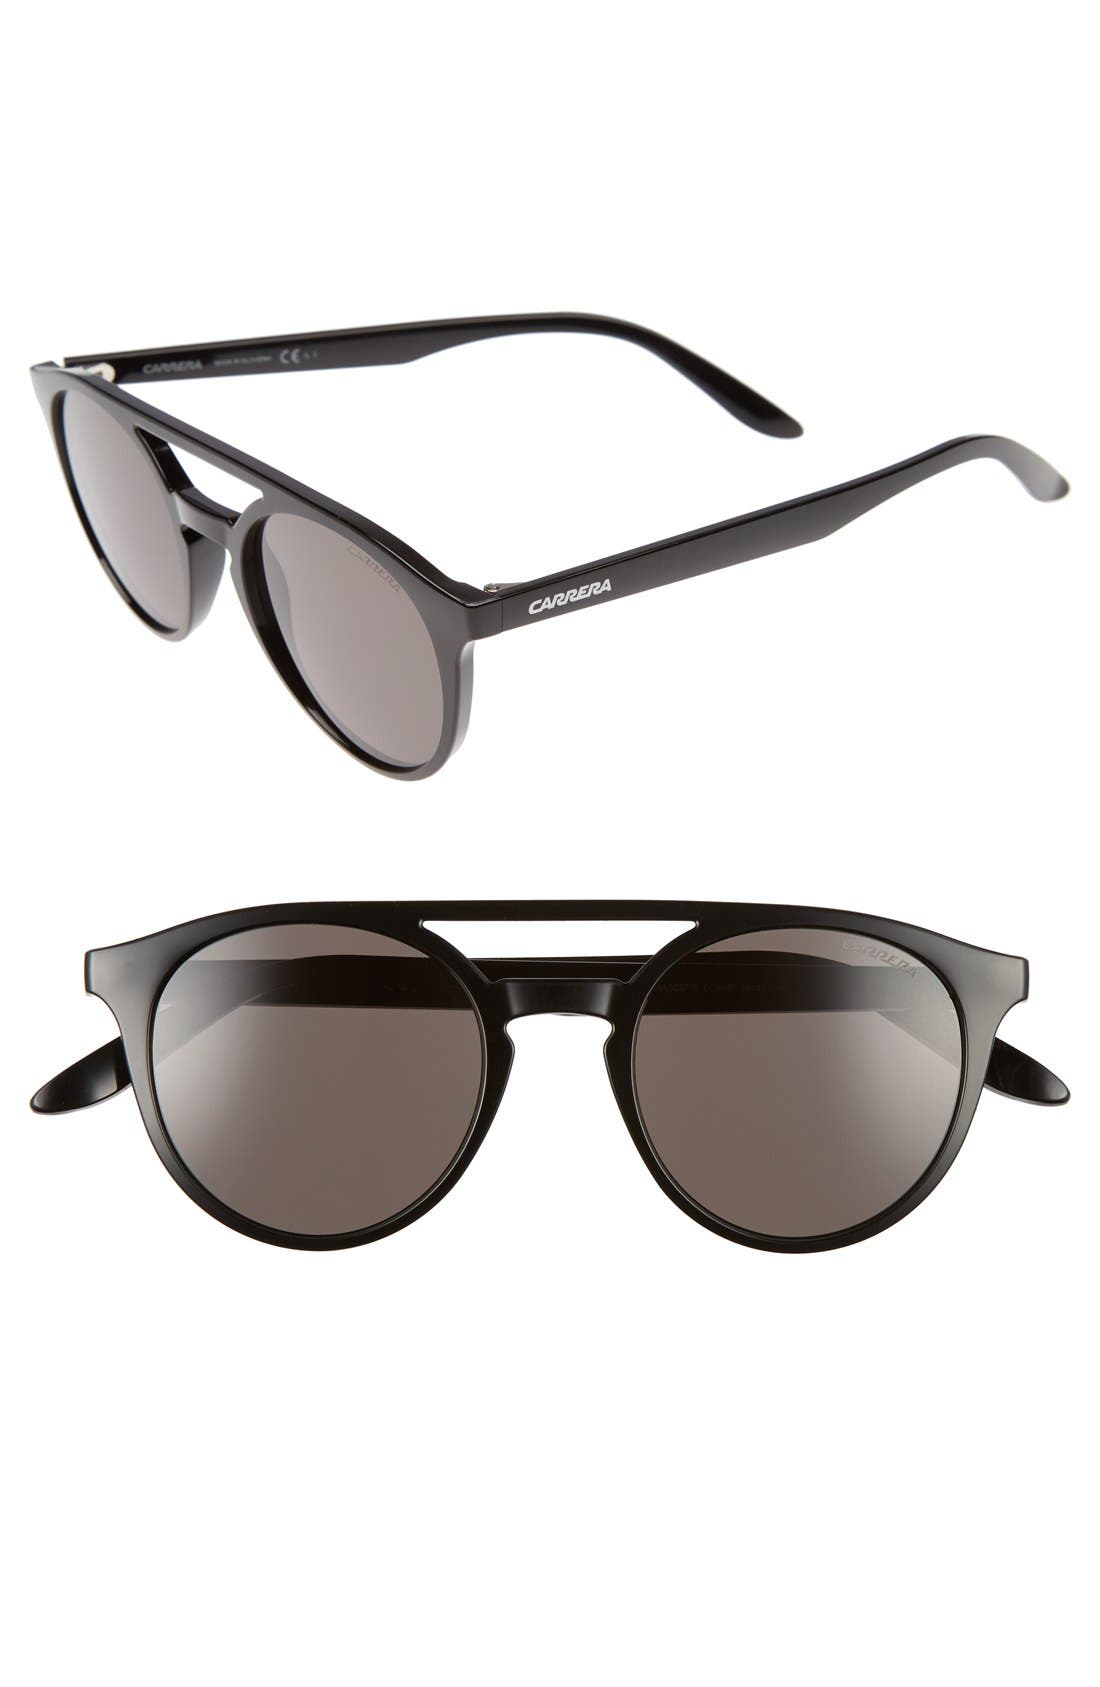 Alternate Image 1 Selected - Carrera Eyewear 49mm Round Sunglasses